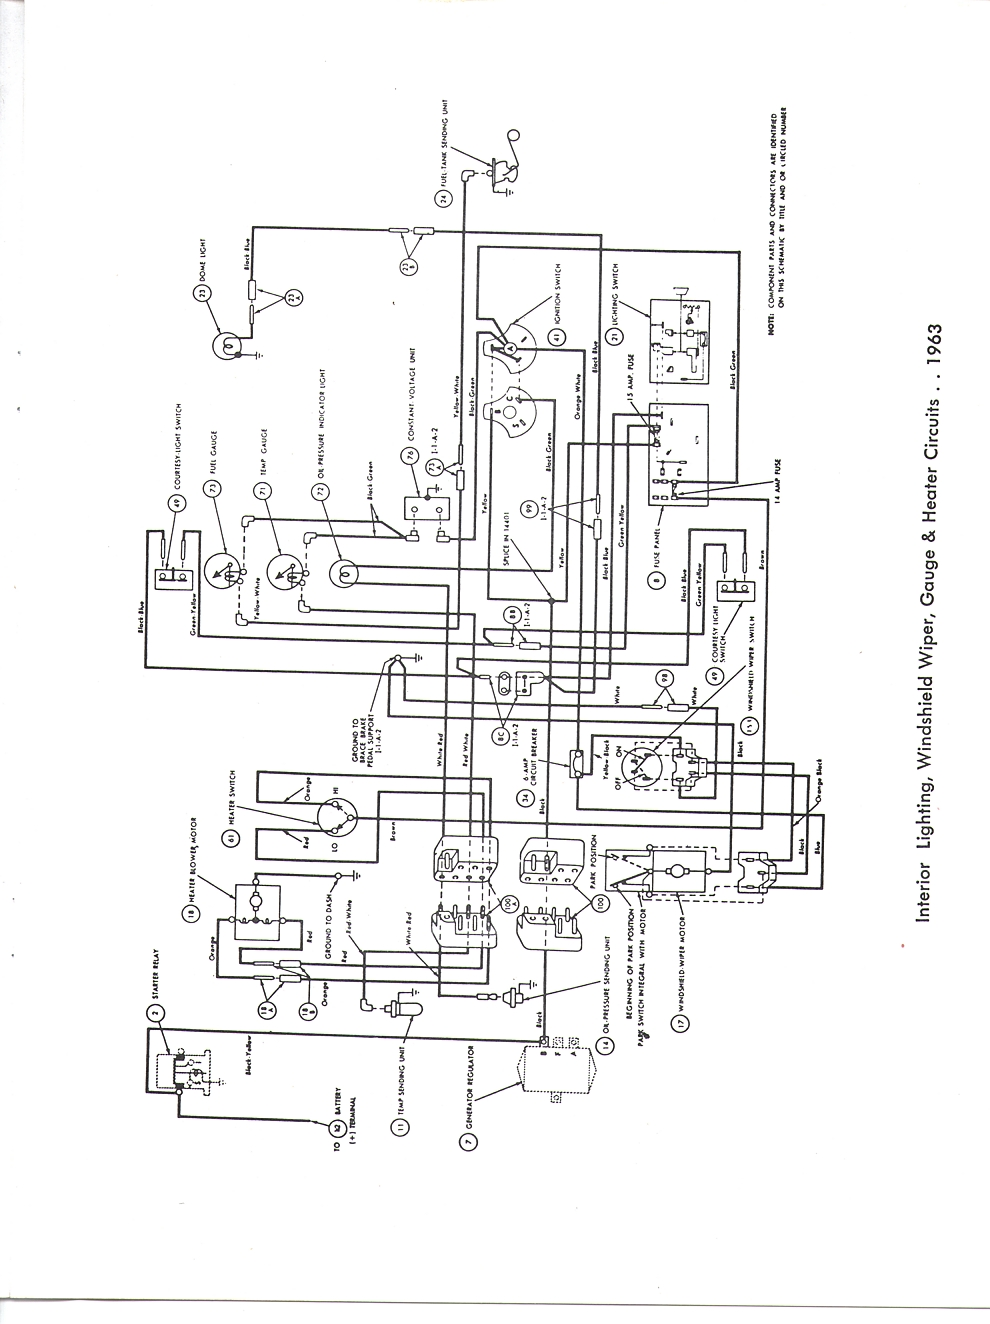 Falcon Diagrams 1968 Mercury Cyclone Wiring Diagram Schematic Comet Drawing A Complete For 1963 Figure 1 2